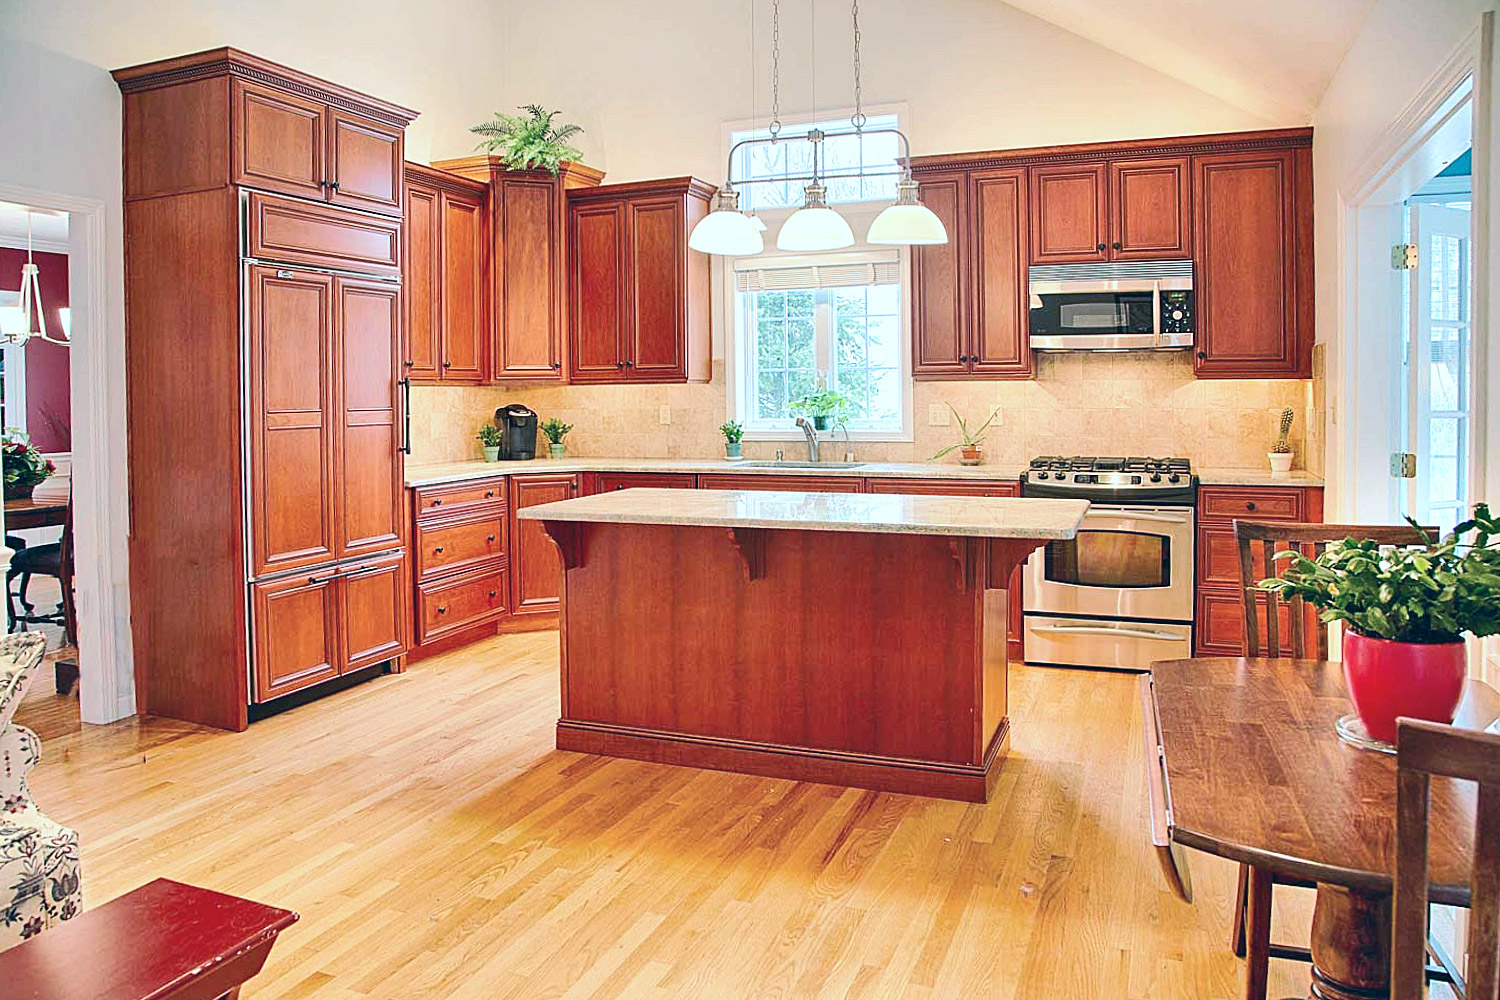 The exquisite kitchen has a timeless design and is easily maintained.